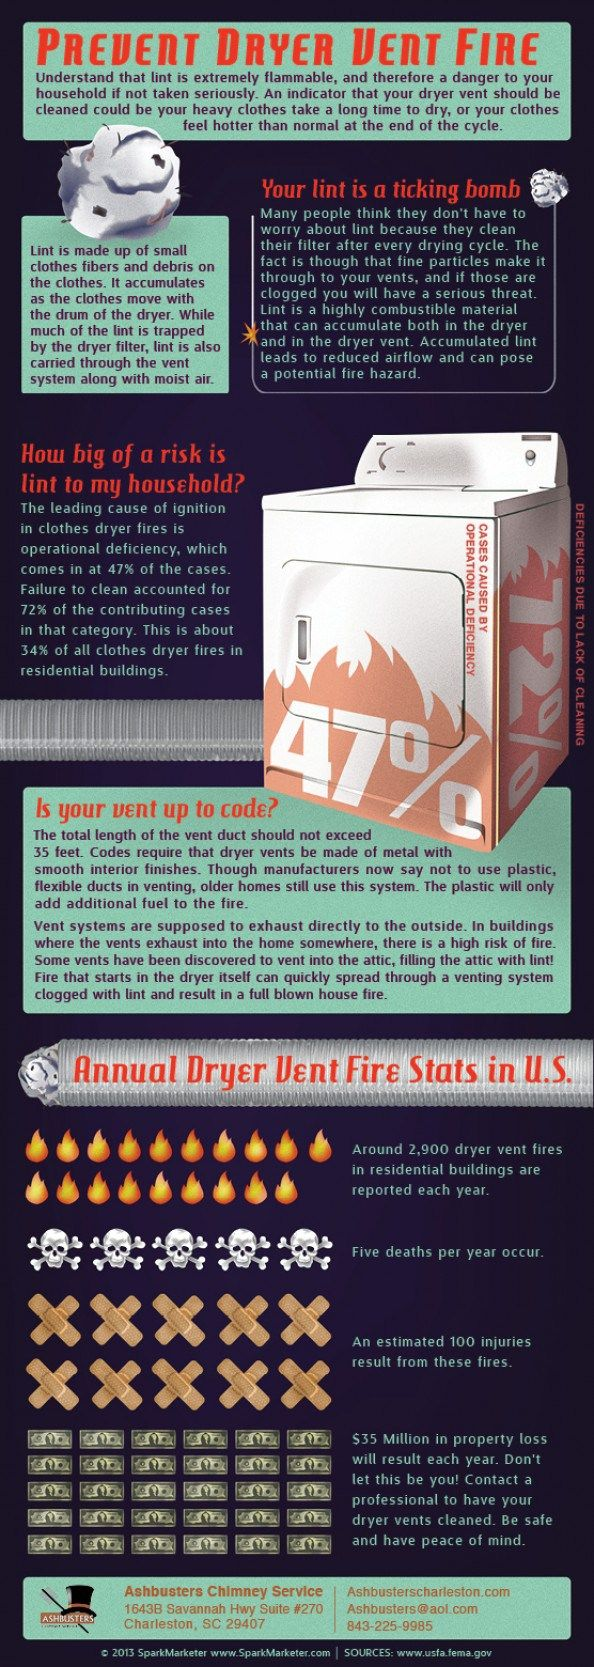 Infographic on dryer fires More Info Dryer vent cleaning  http://aaaductcleaningsa.com/dryer-vent-cleaning-san-antonio-tx.html http://www.aaaductcleaning.com/dryer-vent-cleaning-san-antonio-tx.html